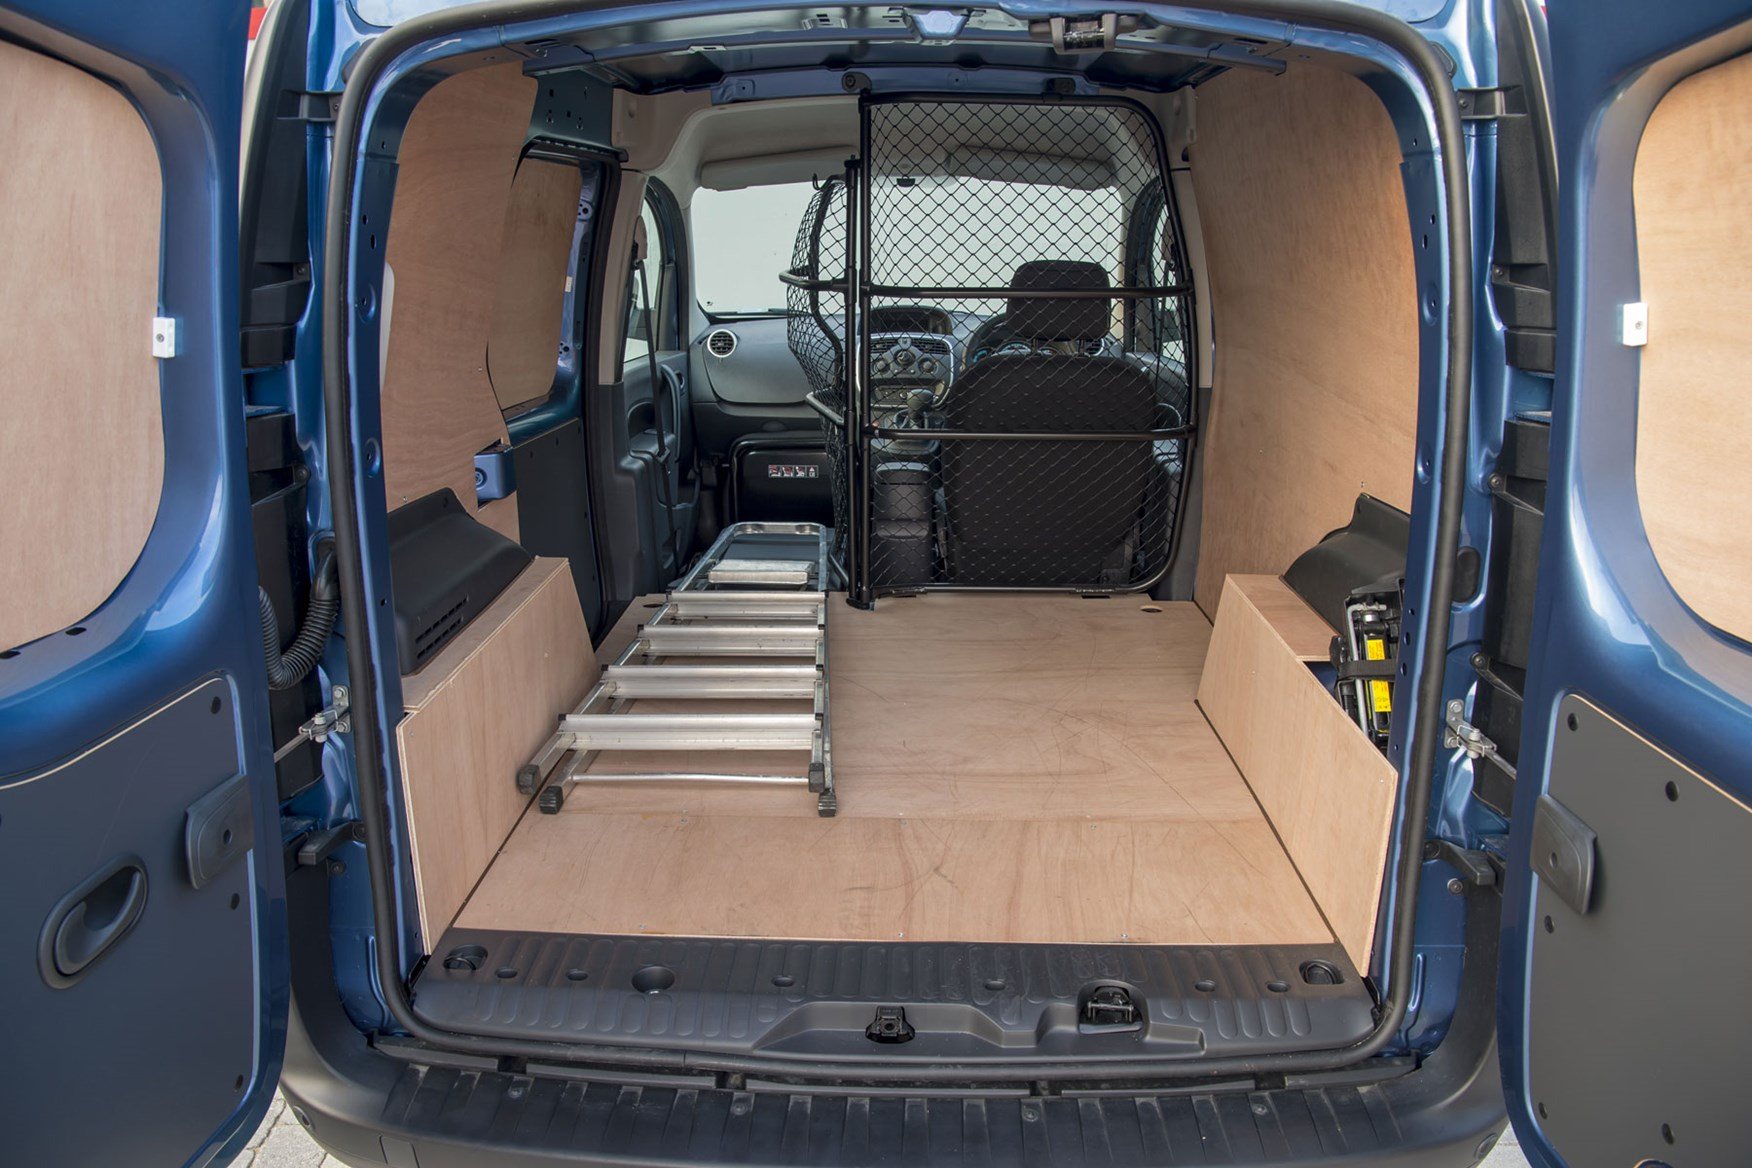 Renault Kangoo ZE review 2020 - load area with folding bulkhead